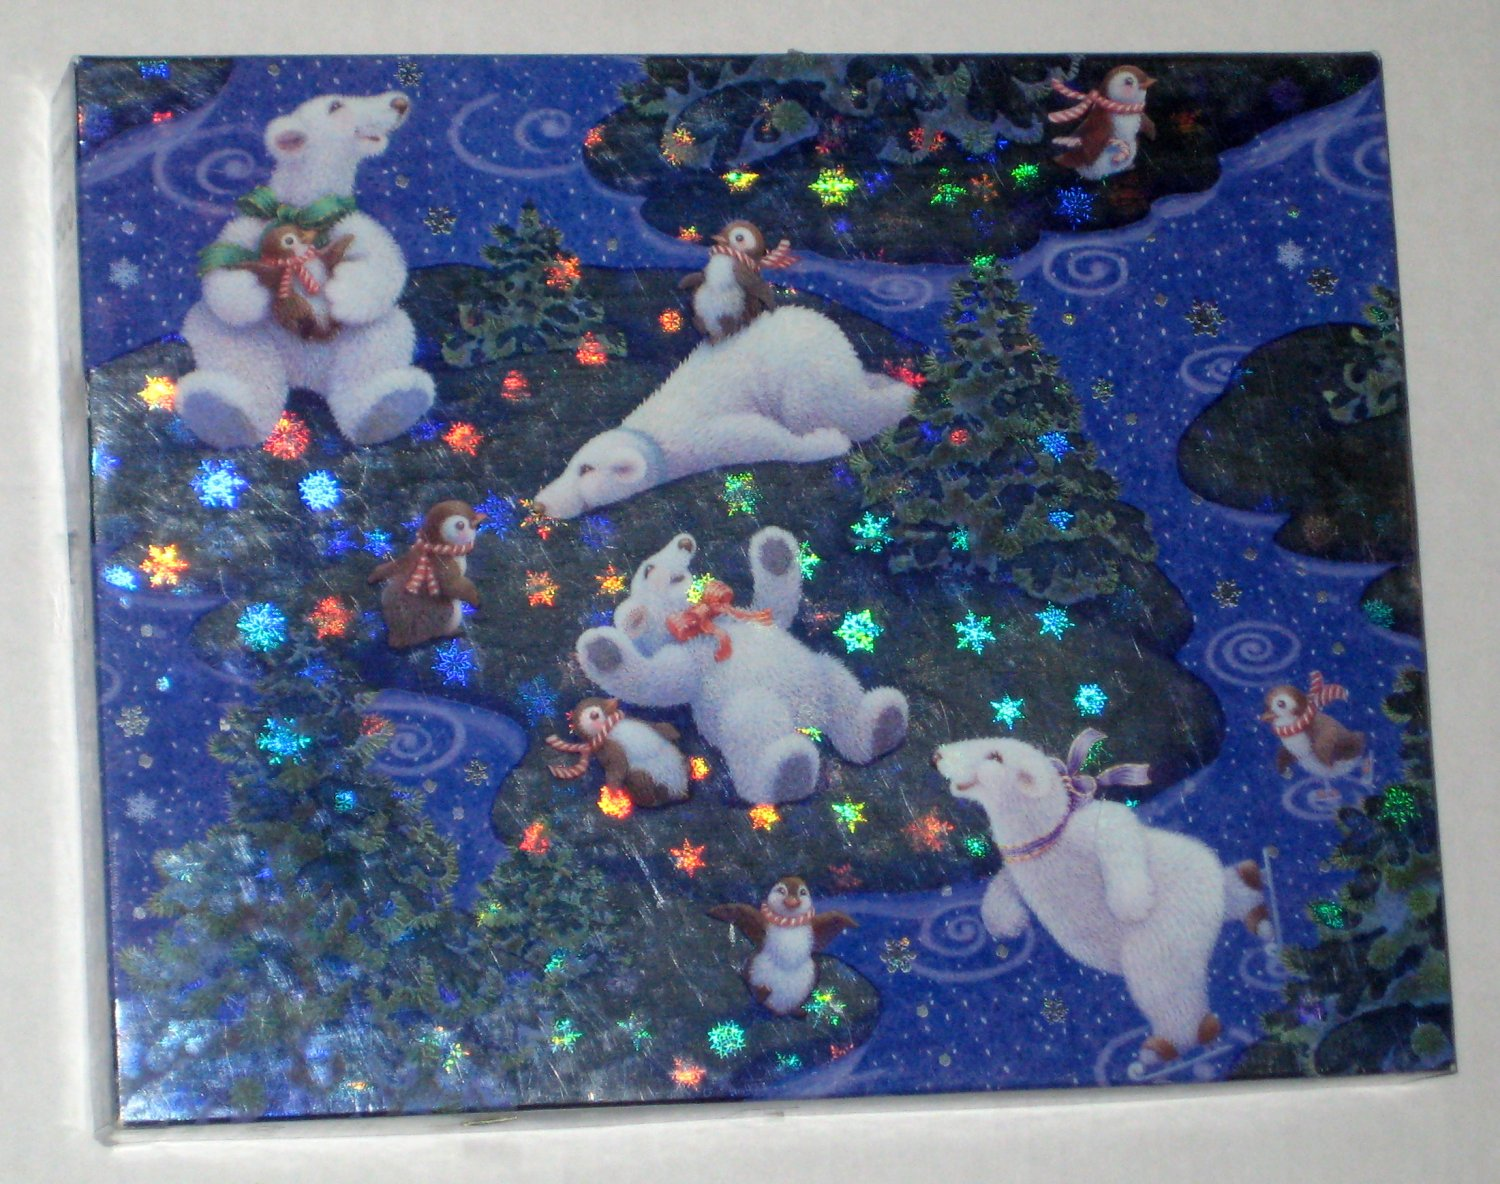 Merry Good Friends 500 Piece Springbok Jigsaw Puzzle XZL4706 Hallmark COMPLETE